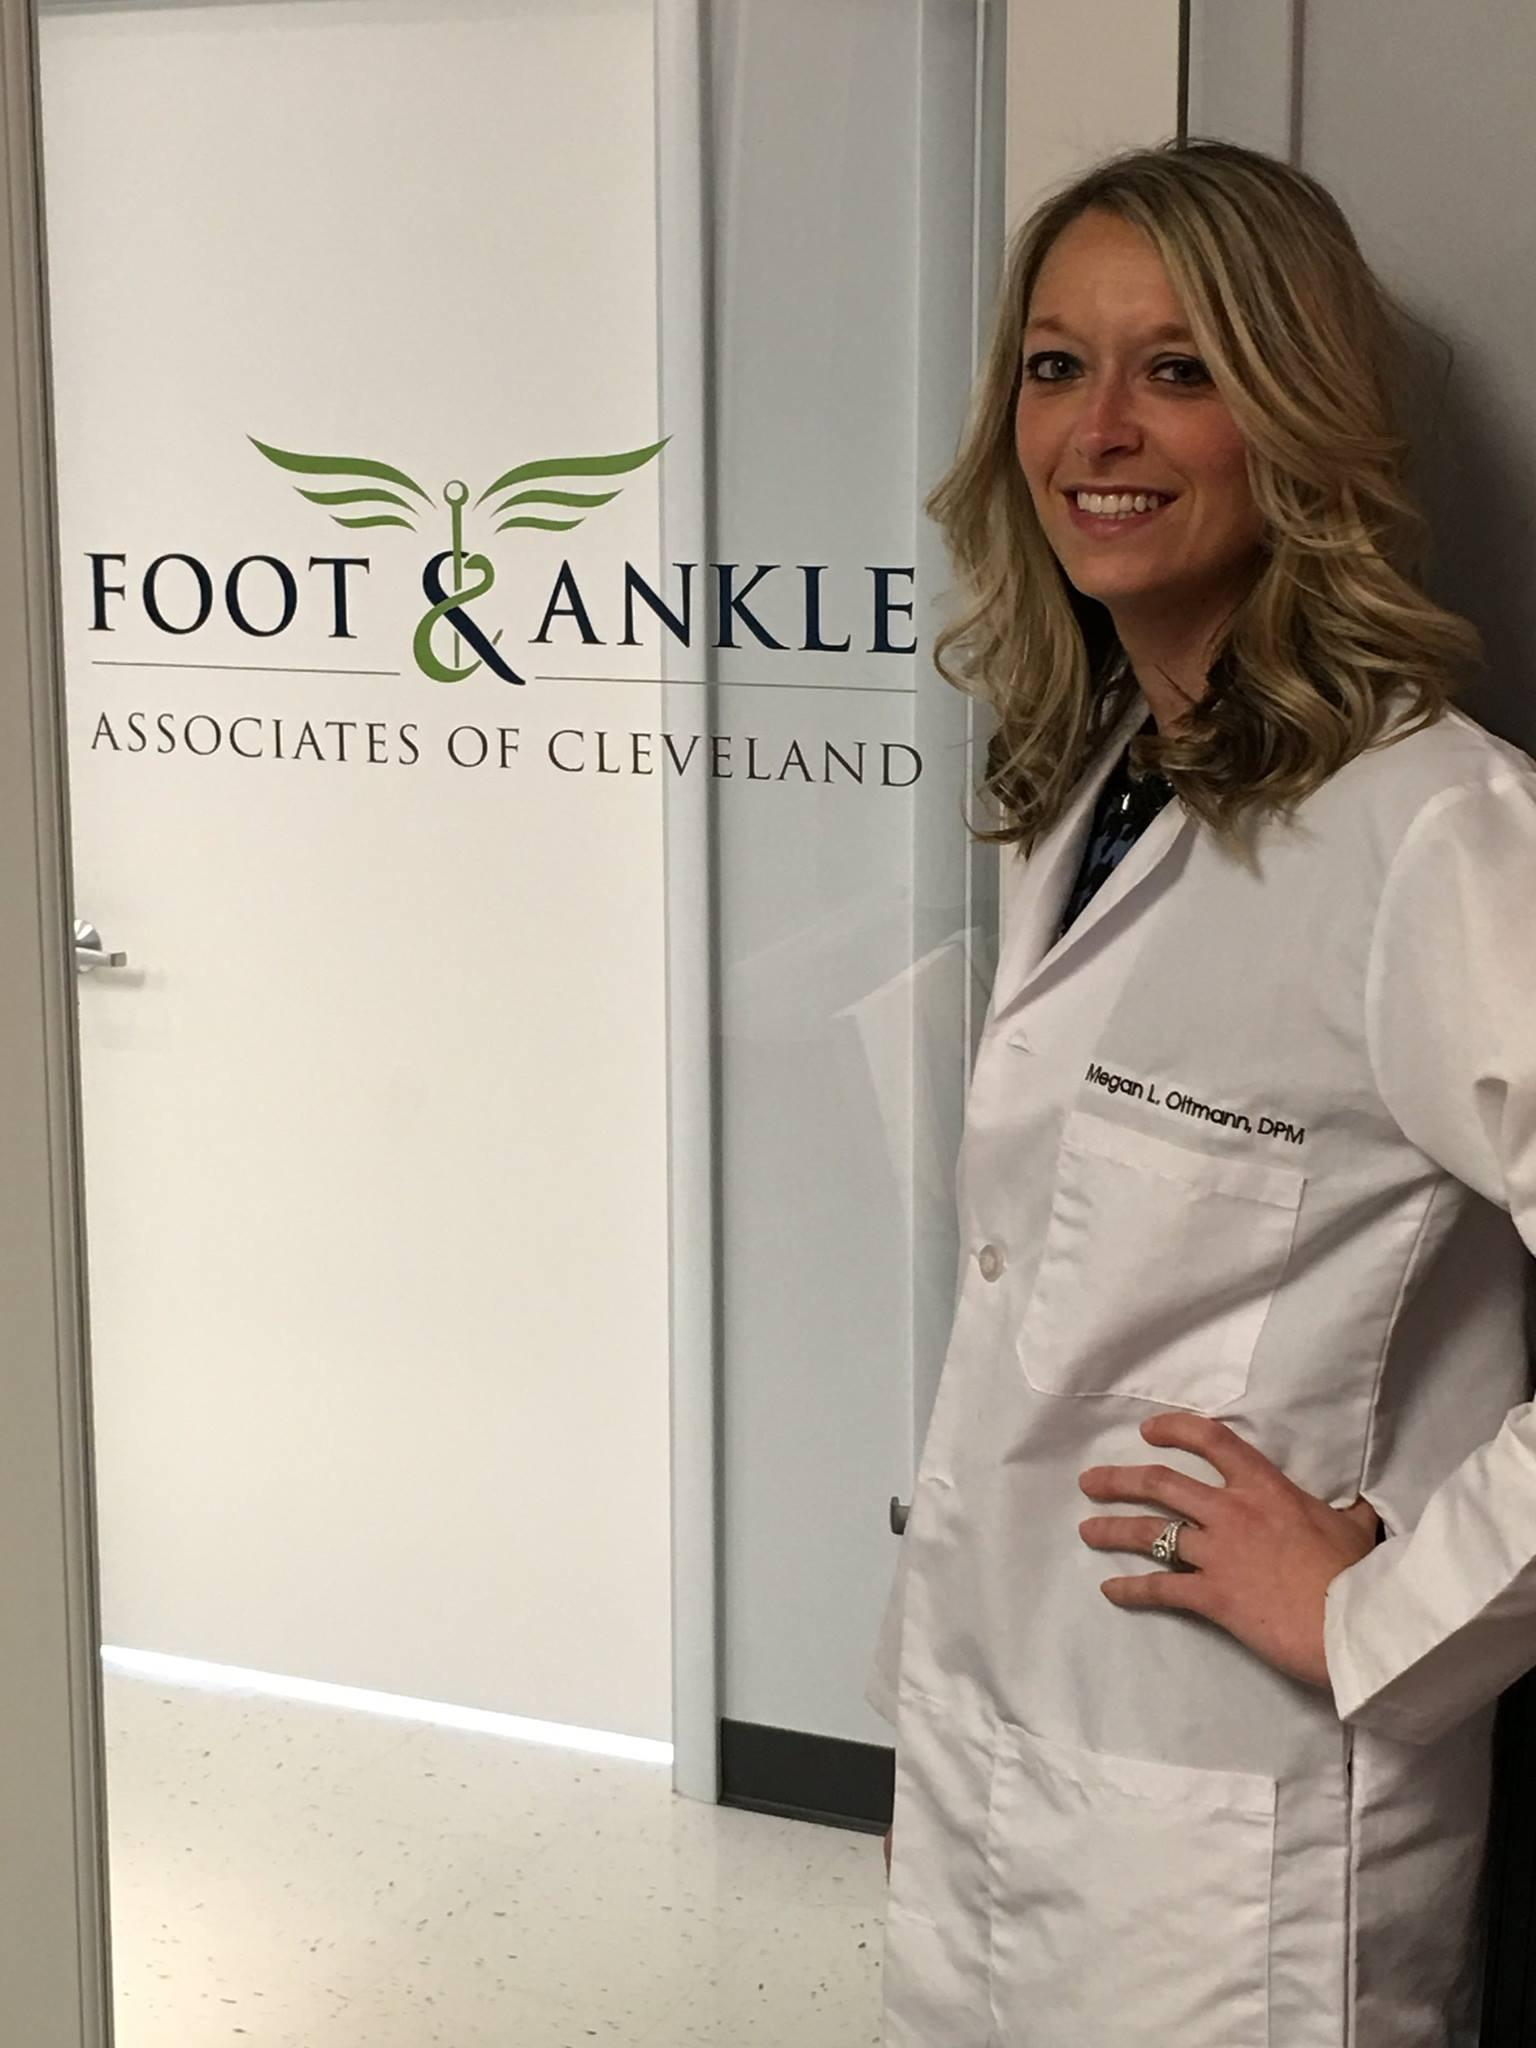 Foot & Ankle Associates of Cleveland image 4